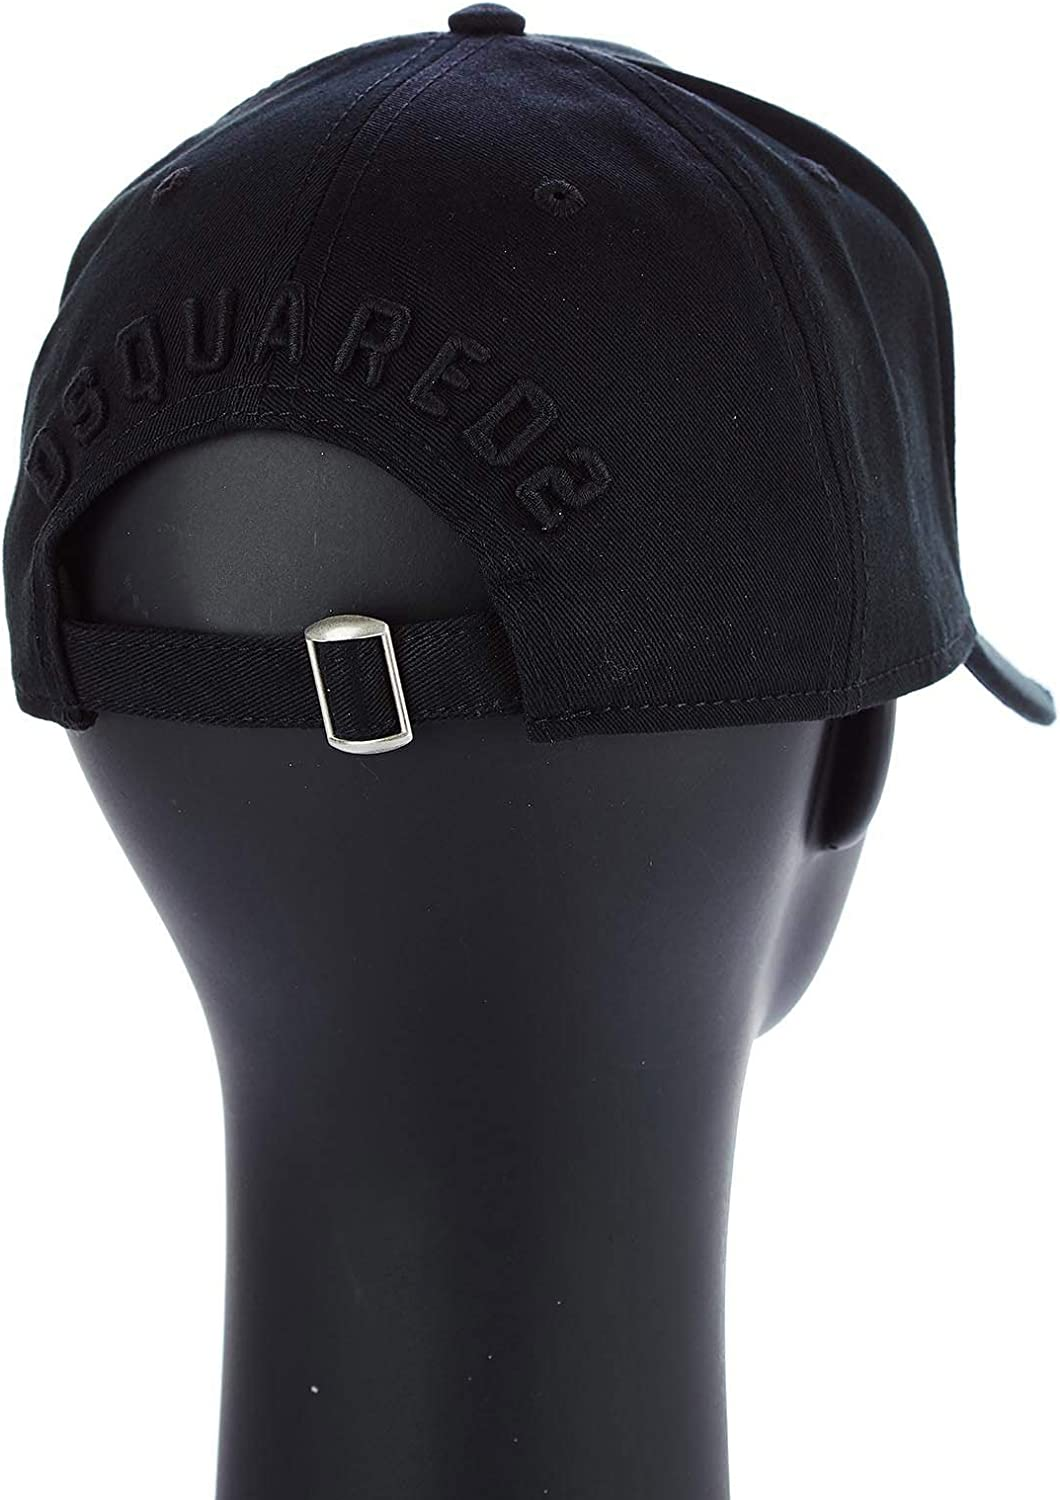 DSQUARED2 Mens Flat Cap Black Black